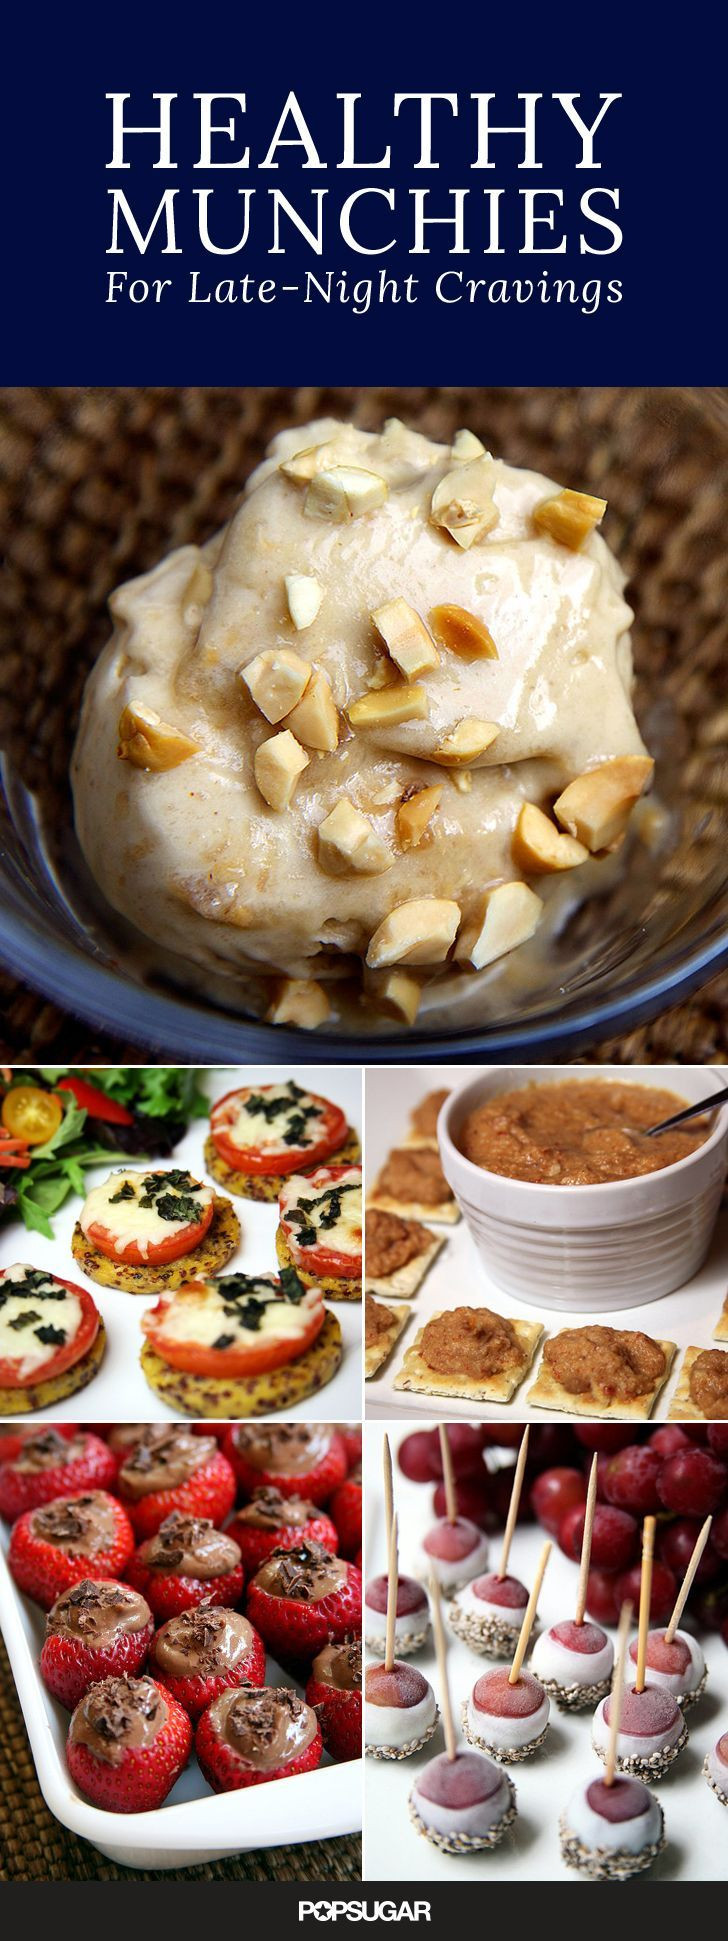 Midnight Healthy Snacks  12 Healthy Snacks That Are Perfect For the Midnight